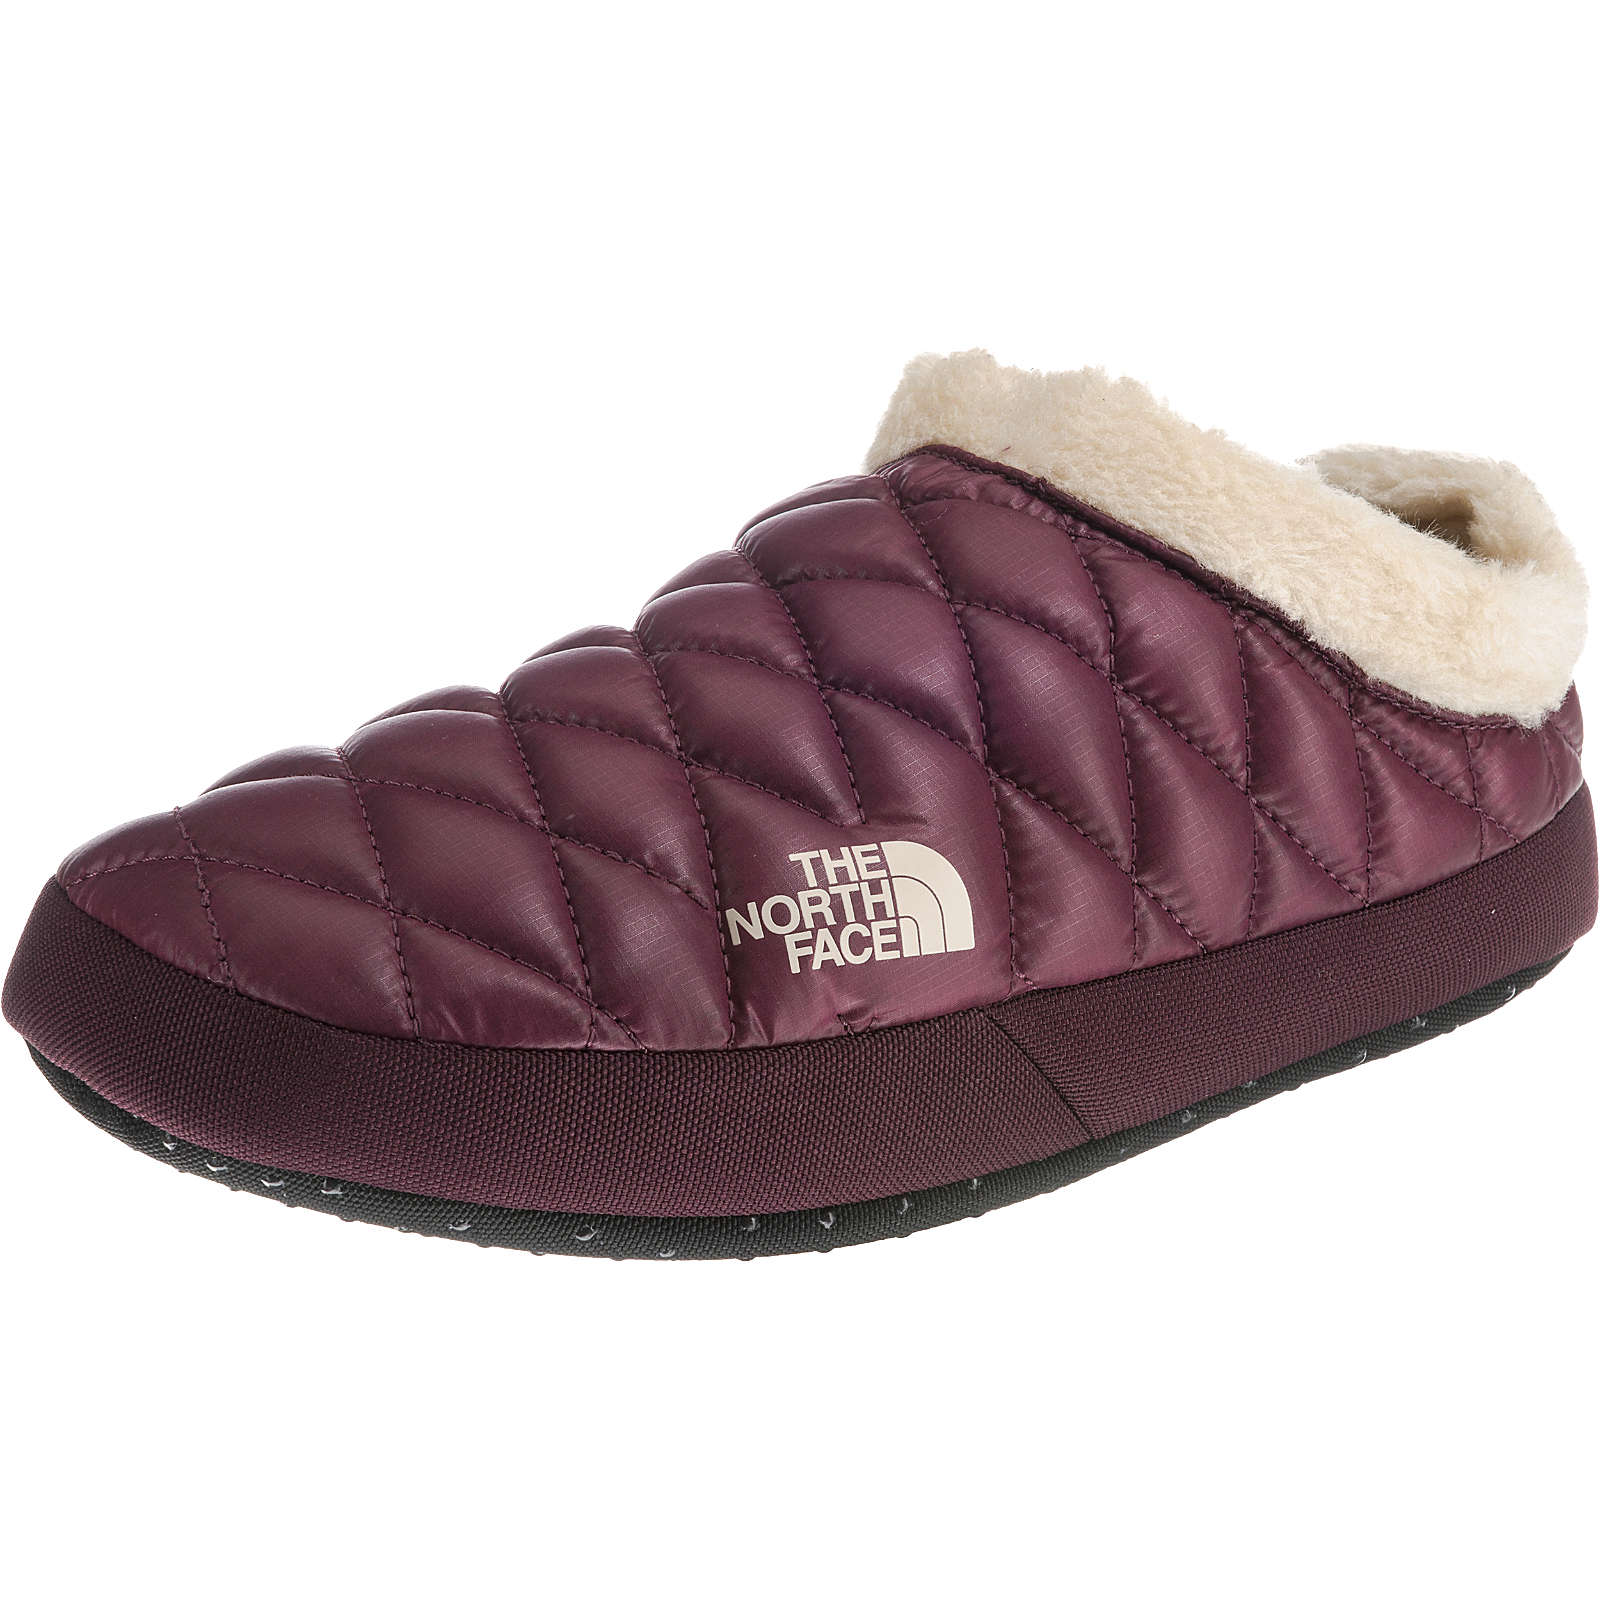 THE NORTH FACE Women's ThermoBall™ Tent Mule Faux Fur IV Hüttenschuhe aubergine Damen Gr. 37